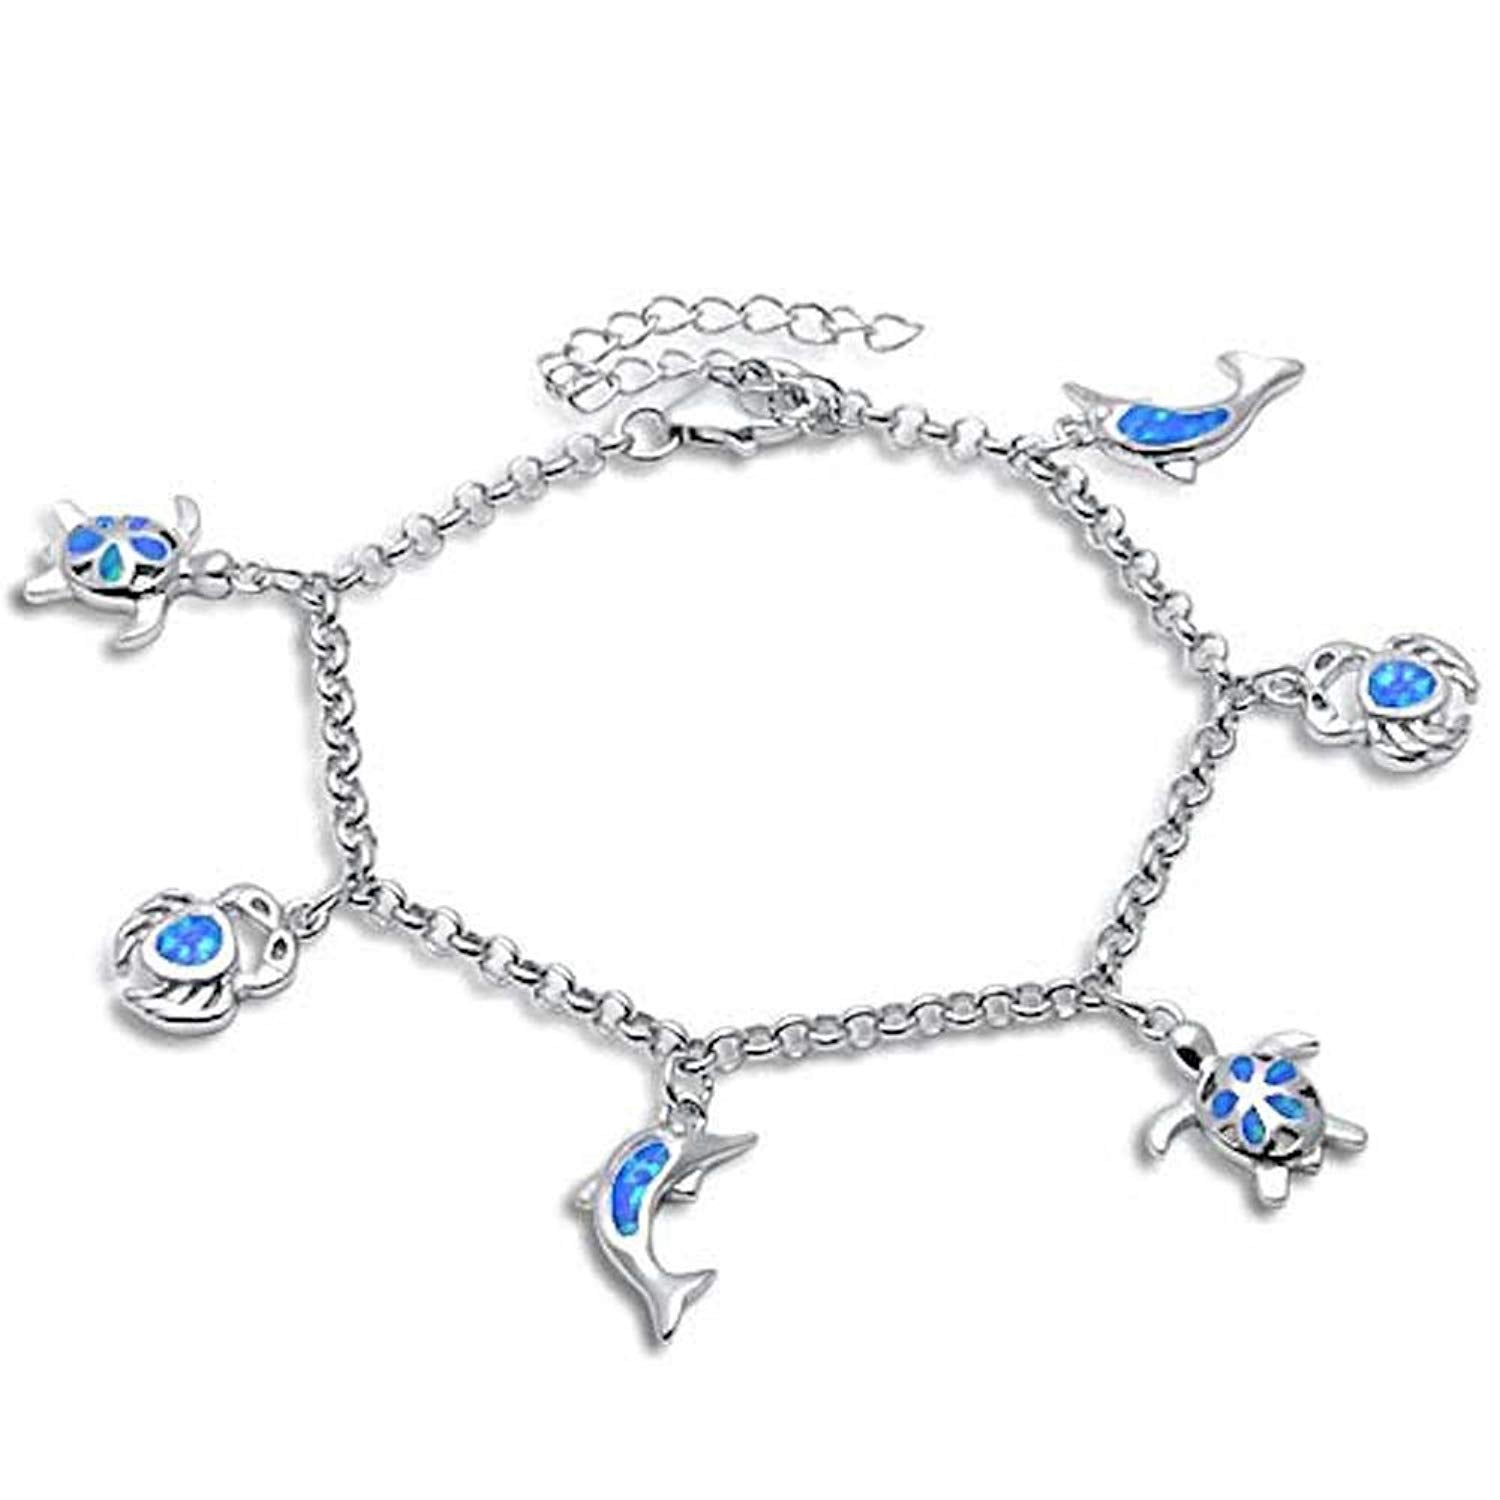 Dangling Charm Bracelet Turtle, Crab, Dolphin Created Fire Blue Opal 925 Sterling Silver choose Color